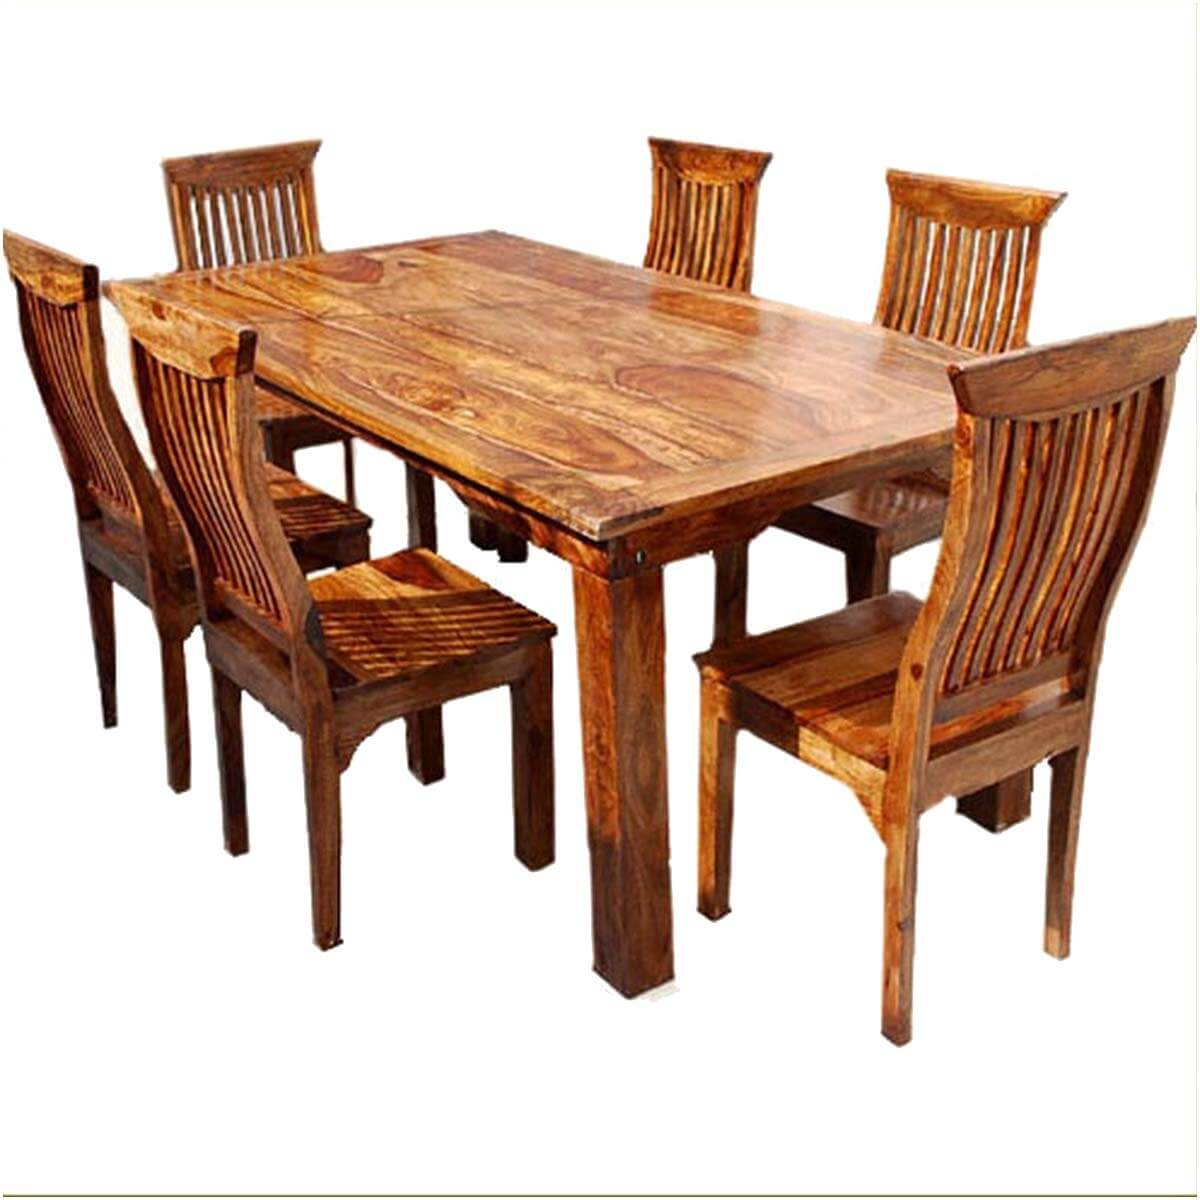 Wooden Dining Set ~ Dallas ranch solid wood rustic dining table chairs hutch set